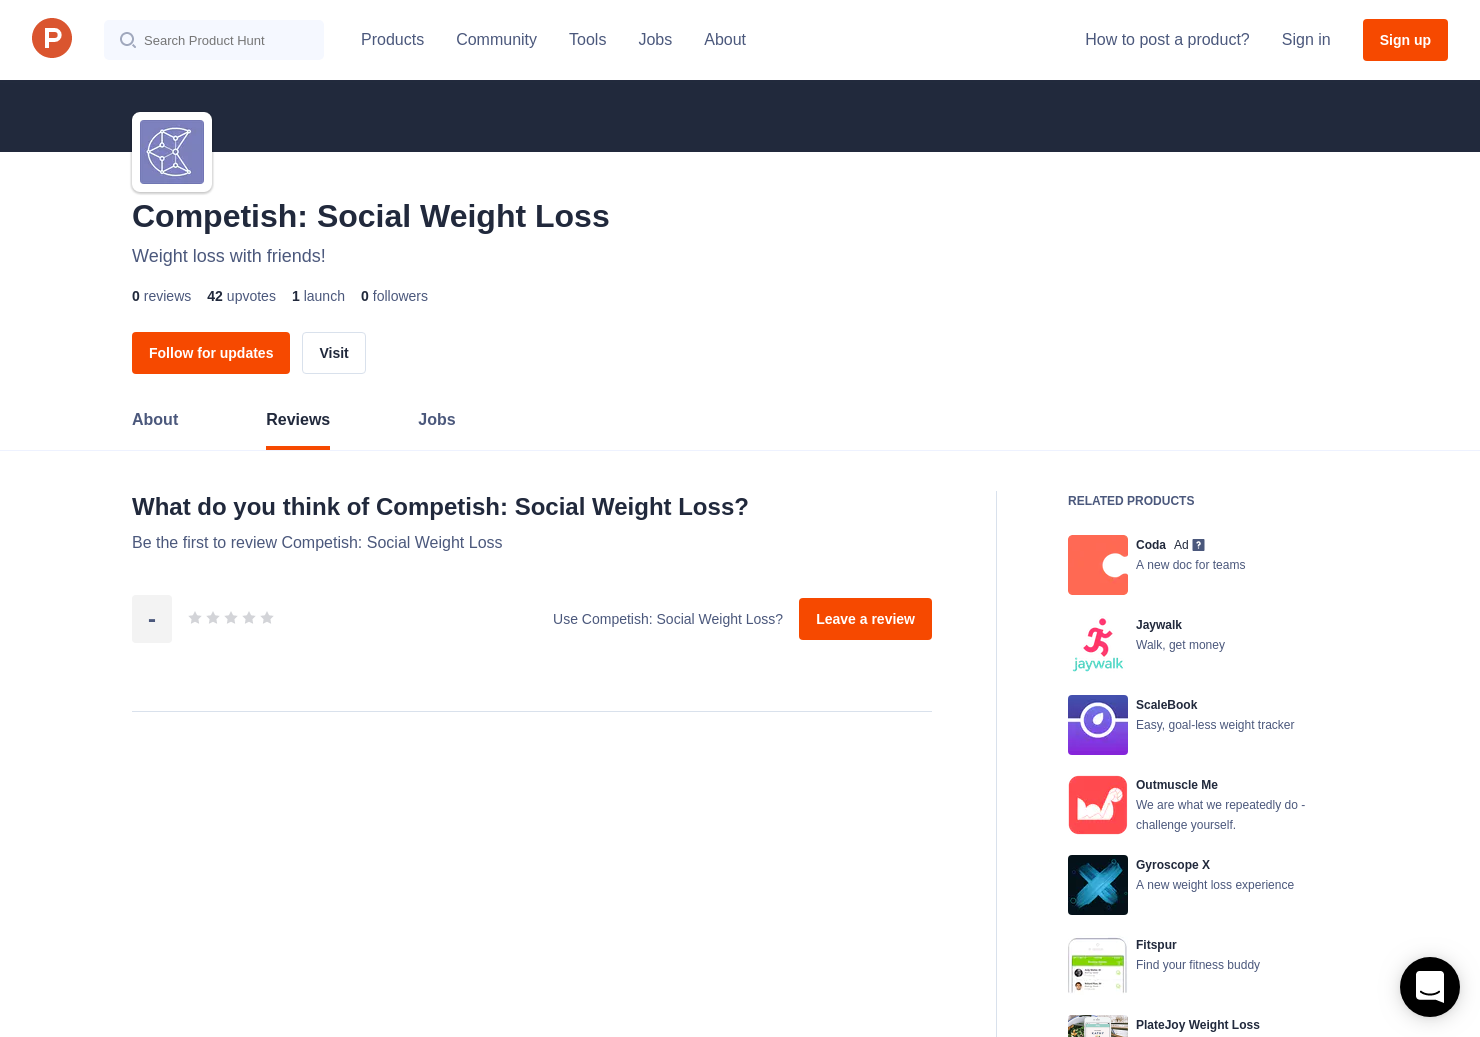 Competish: Social Weight Loss Reviews - Pros, Cons and